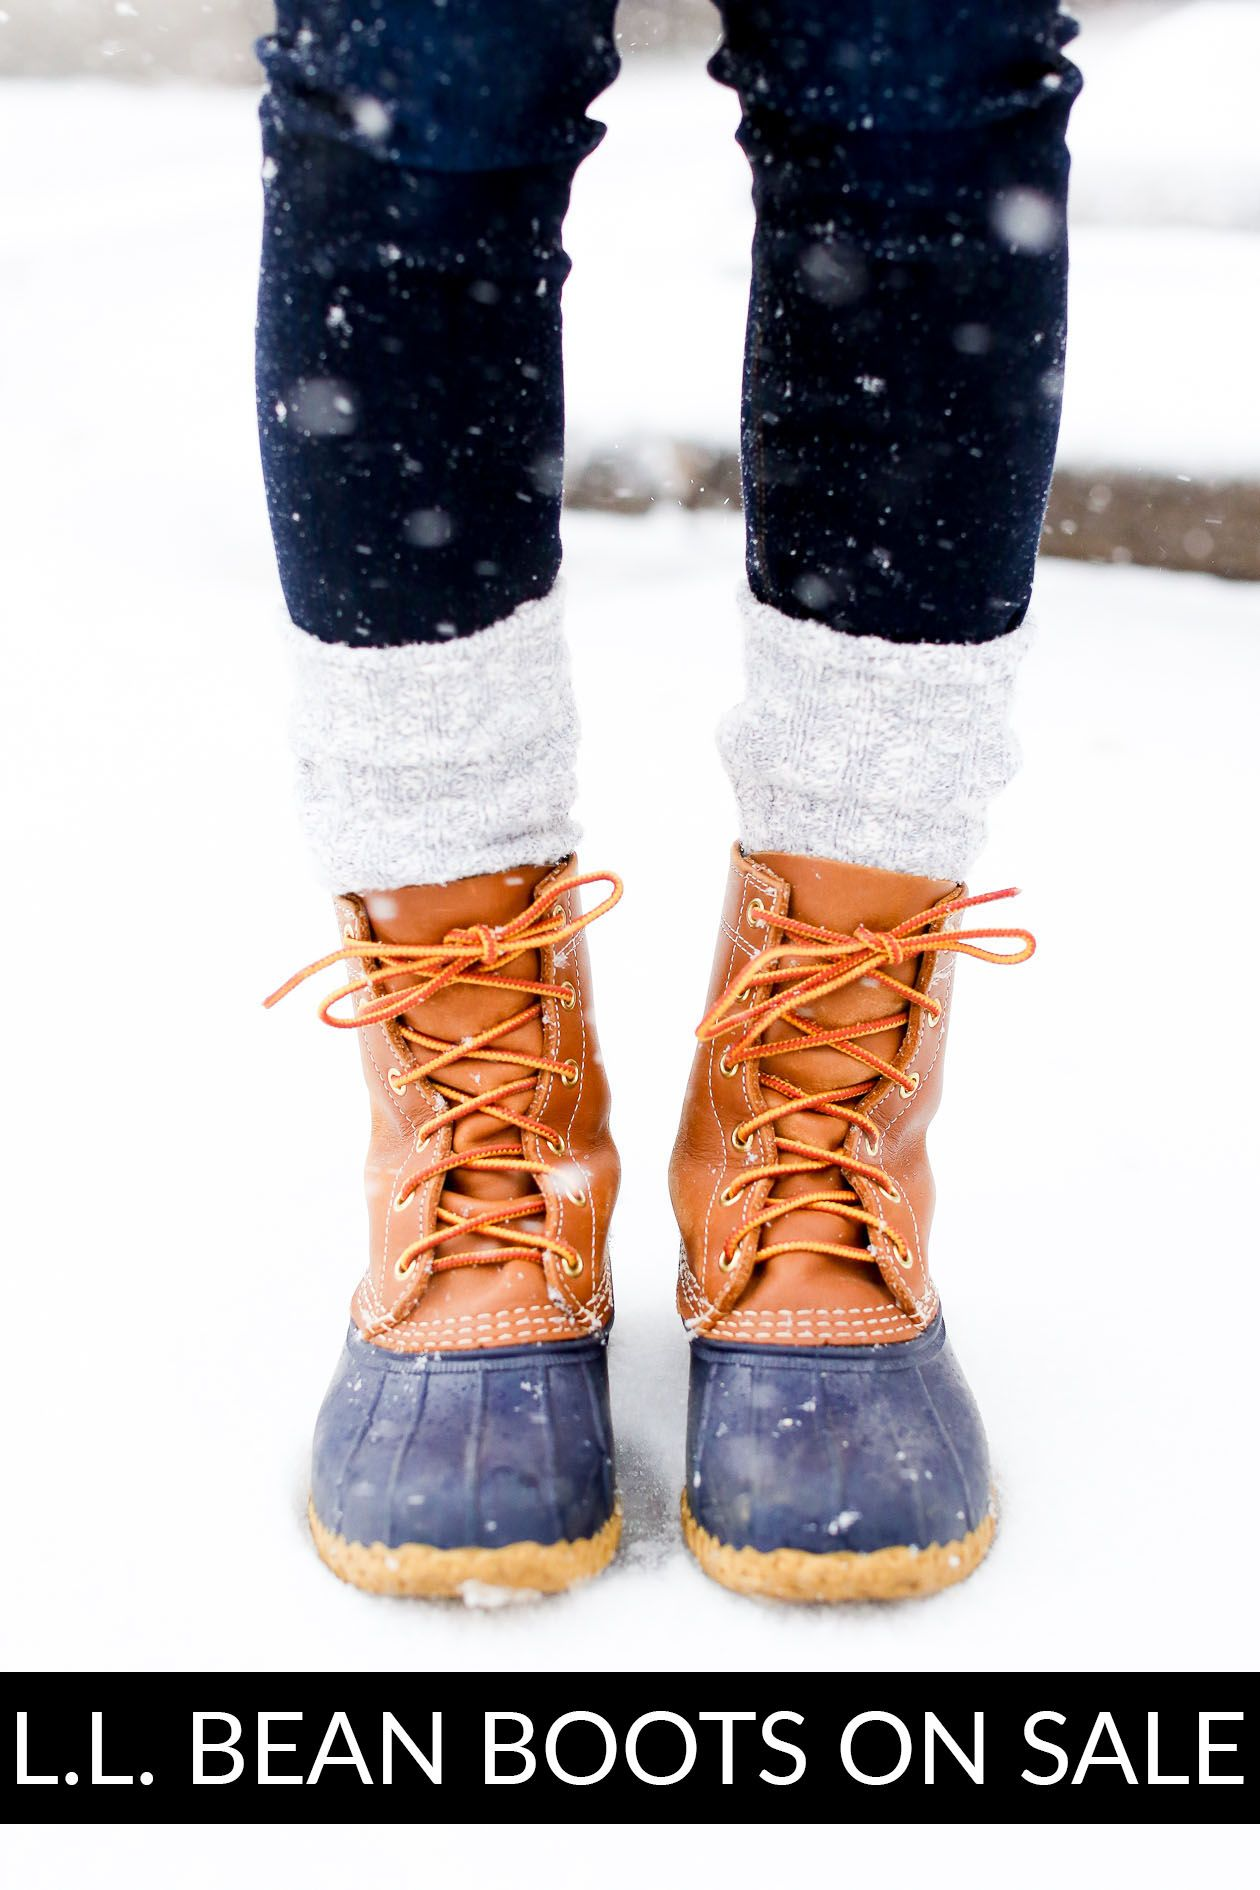 L.L. Bean Boots on Sale - Kelly in the